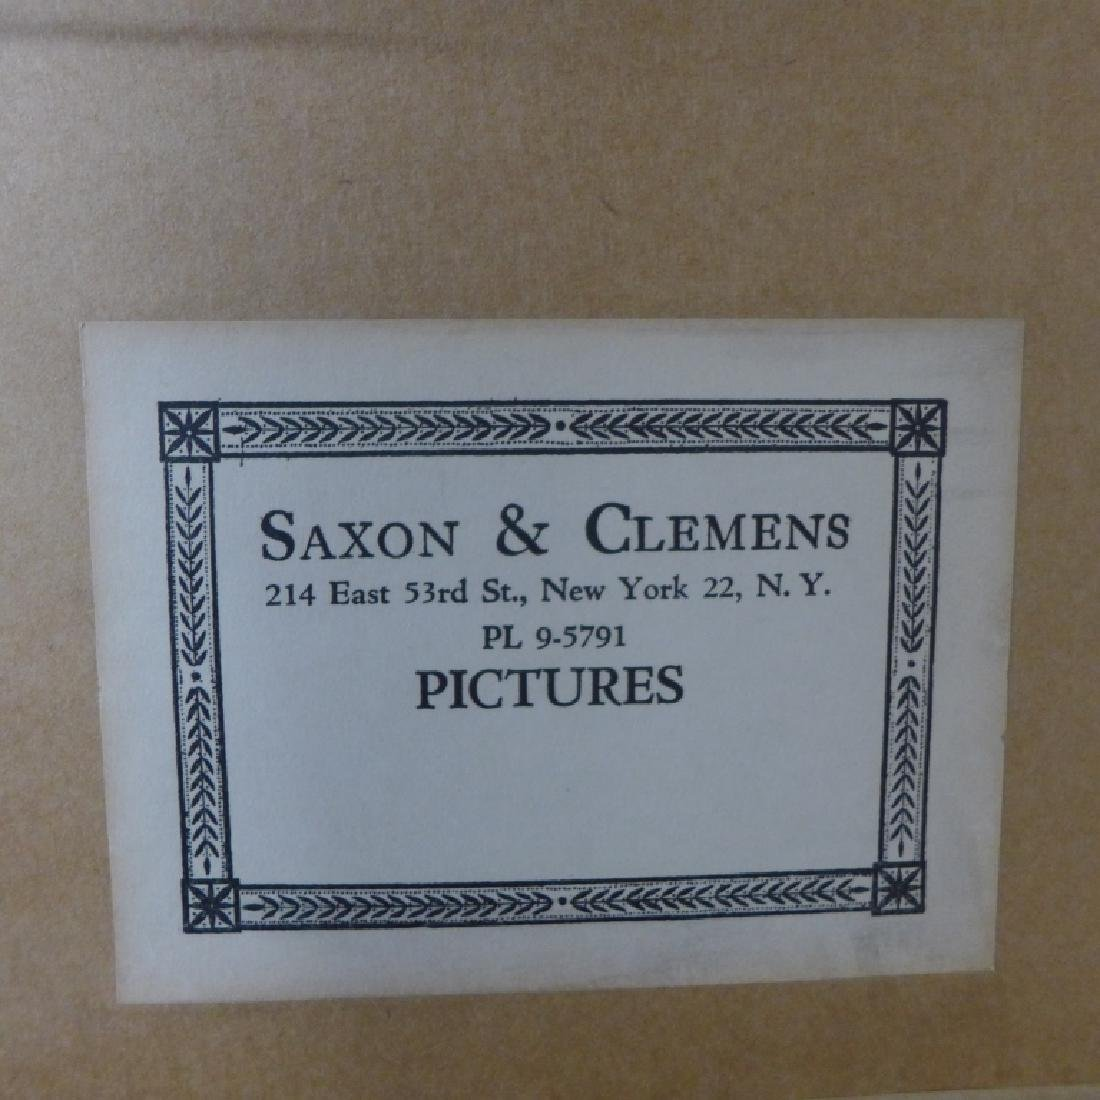 Saxon & Clemens Framed Artwork - 9